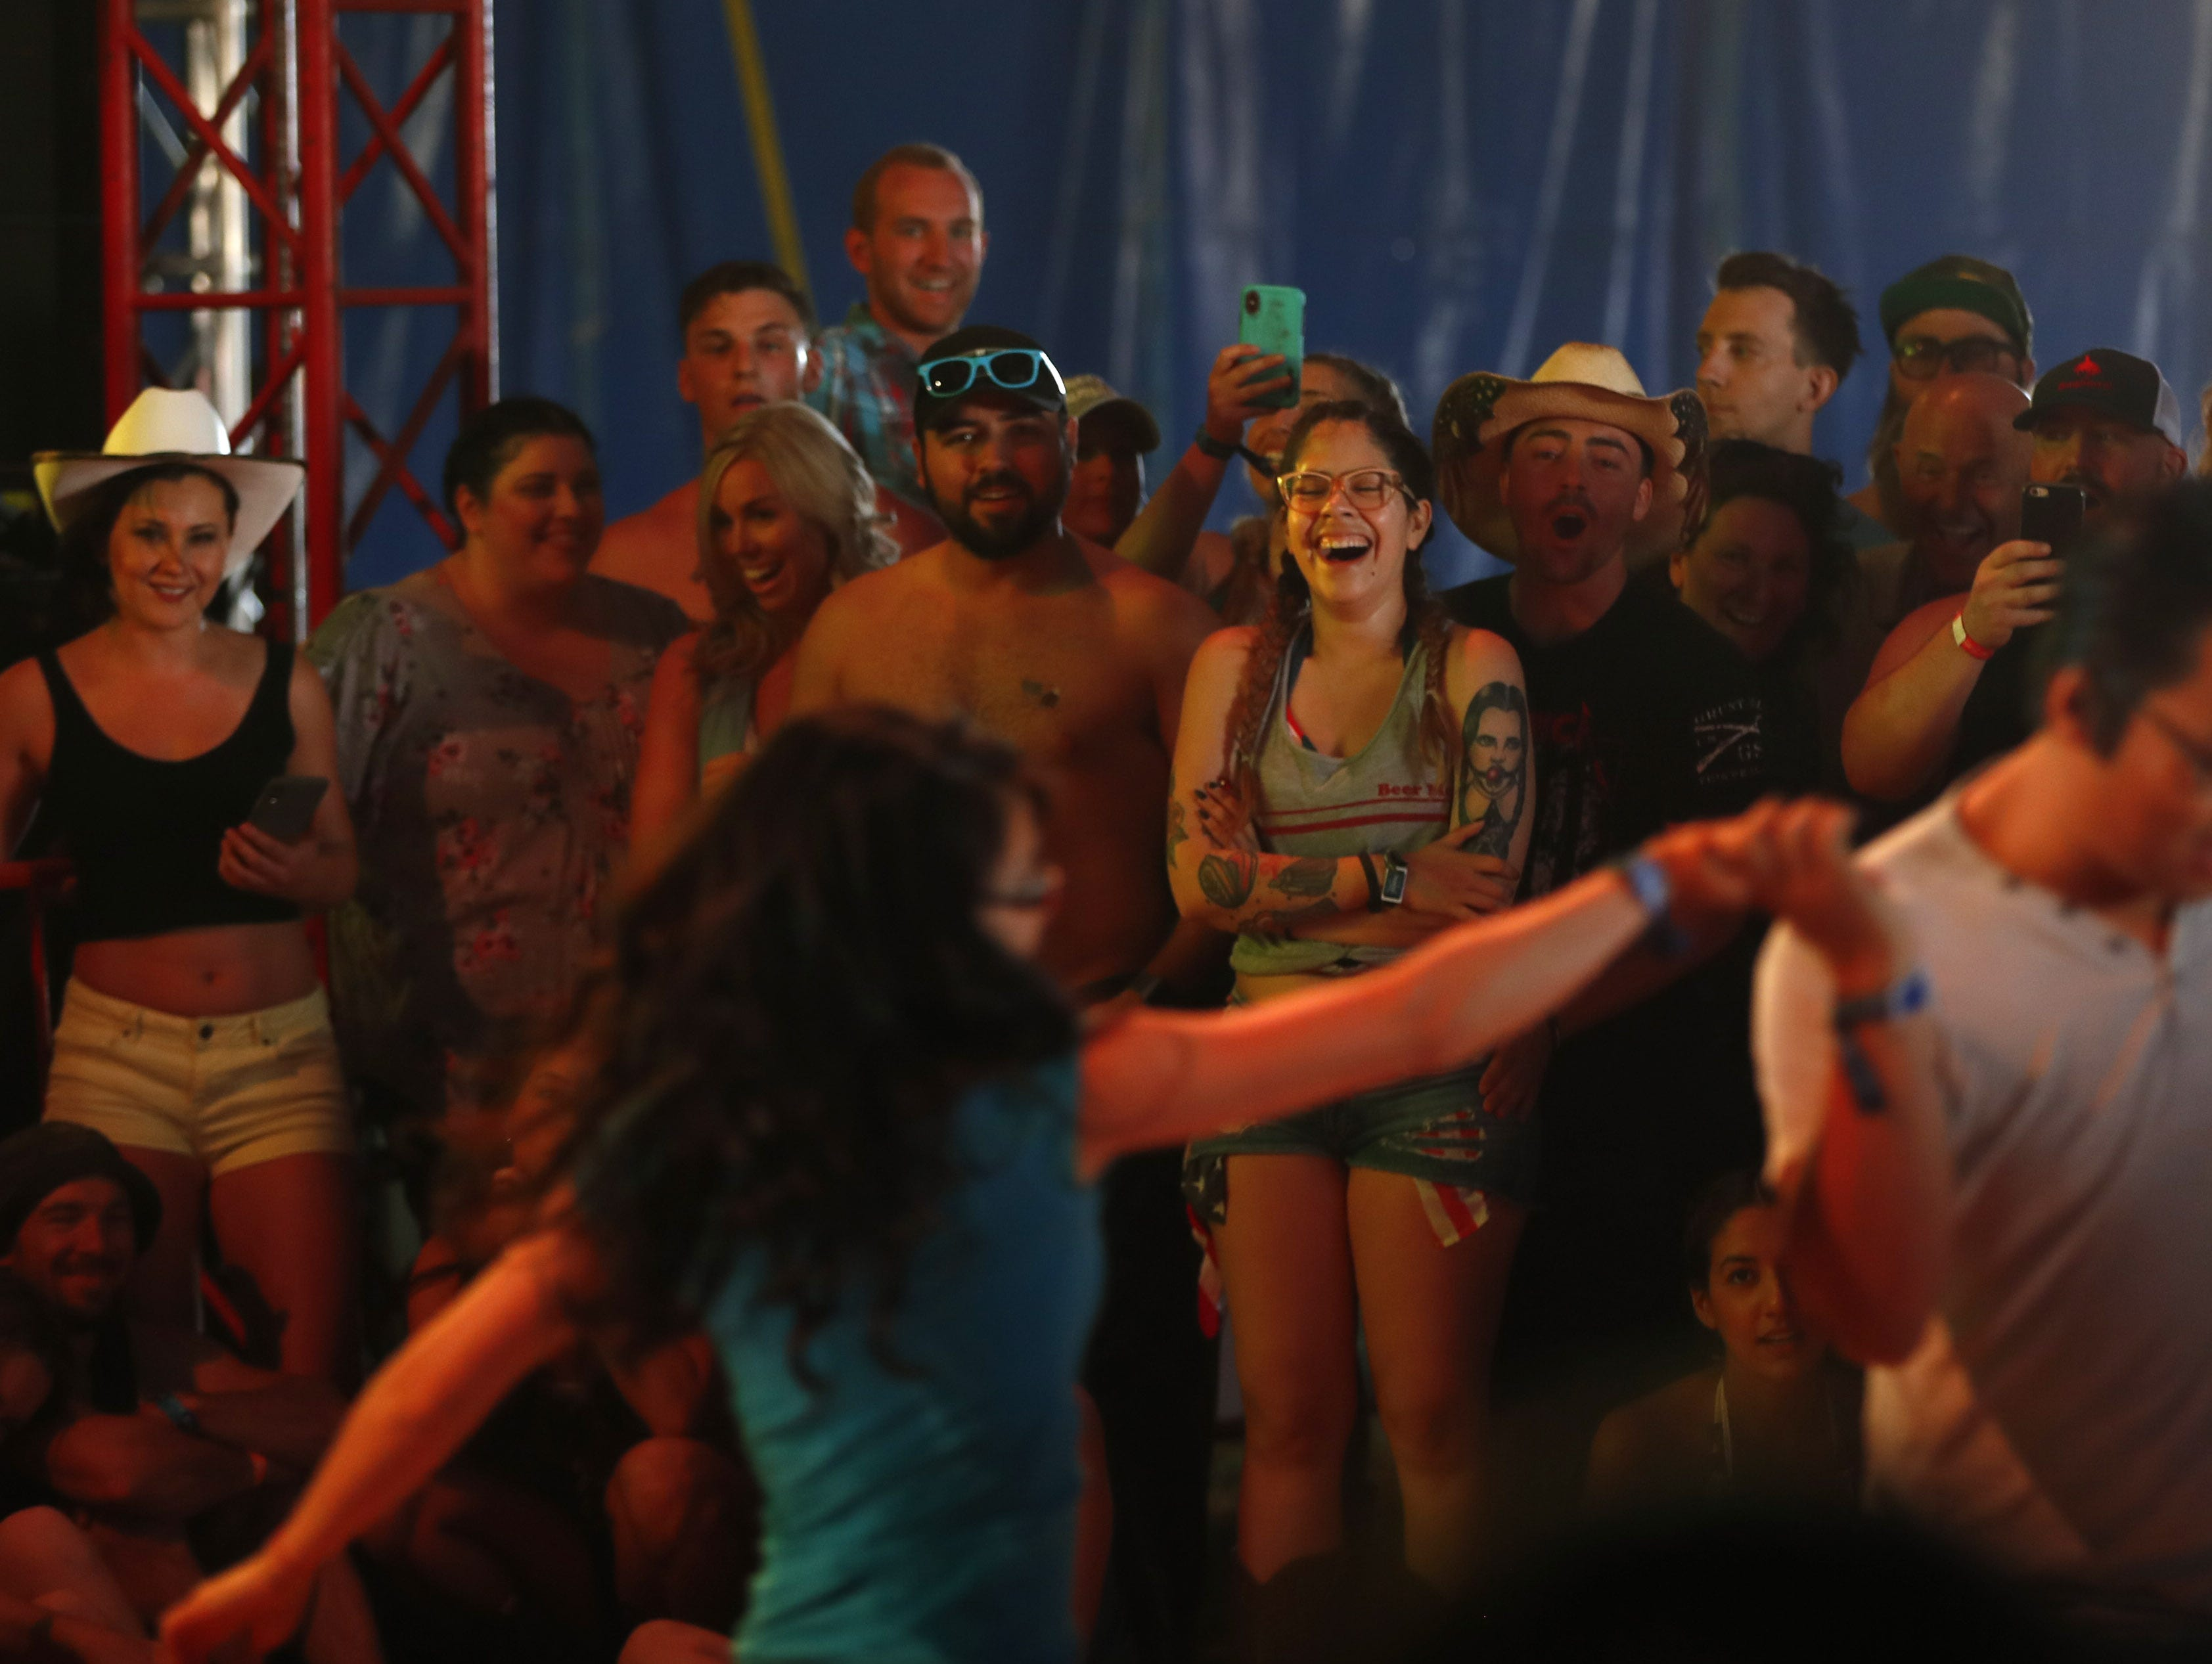 People laugh and clap for Christine Sanchez and Kennedy Wong as they dance during the finals of Dancing with the Thunder competition inside the Electric Thunder tent during Country Thunder in Florence, Ariz. on Saturday, April 13, 2019.